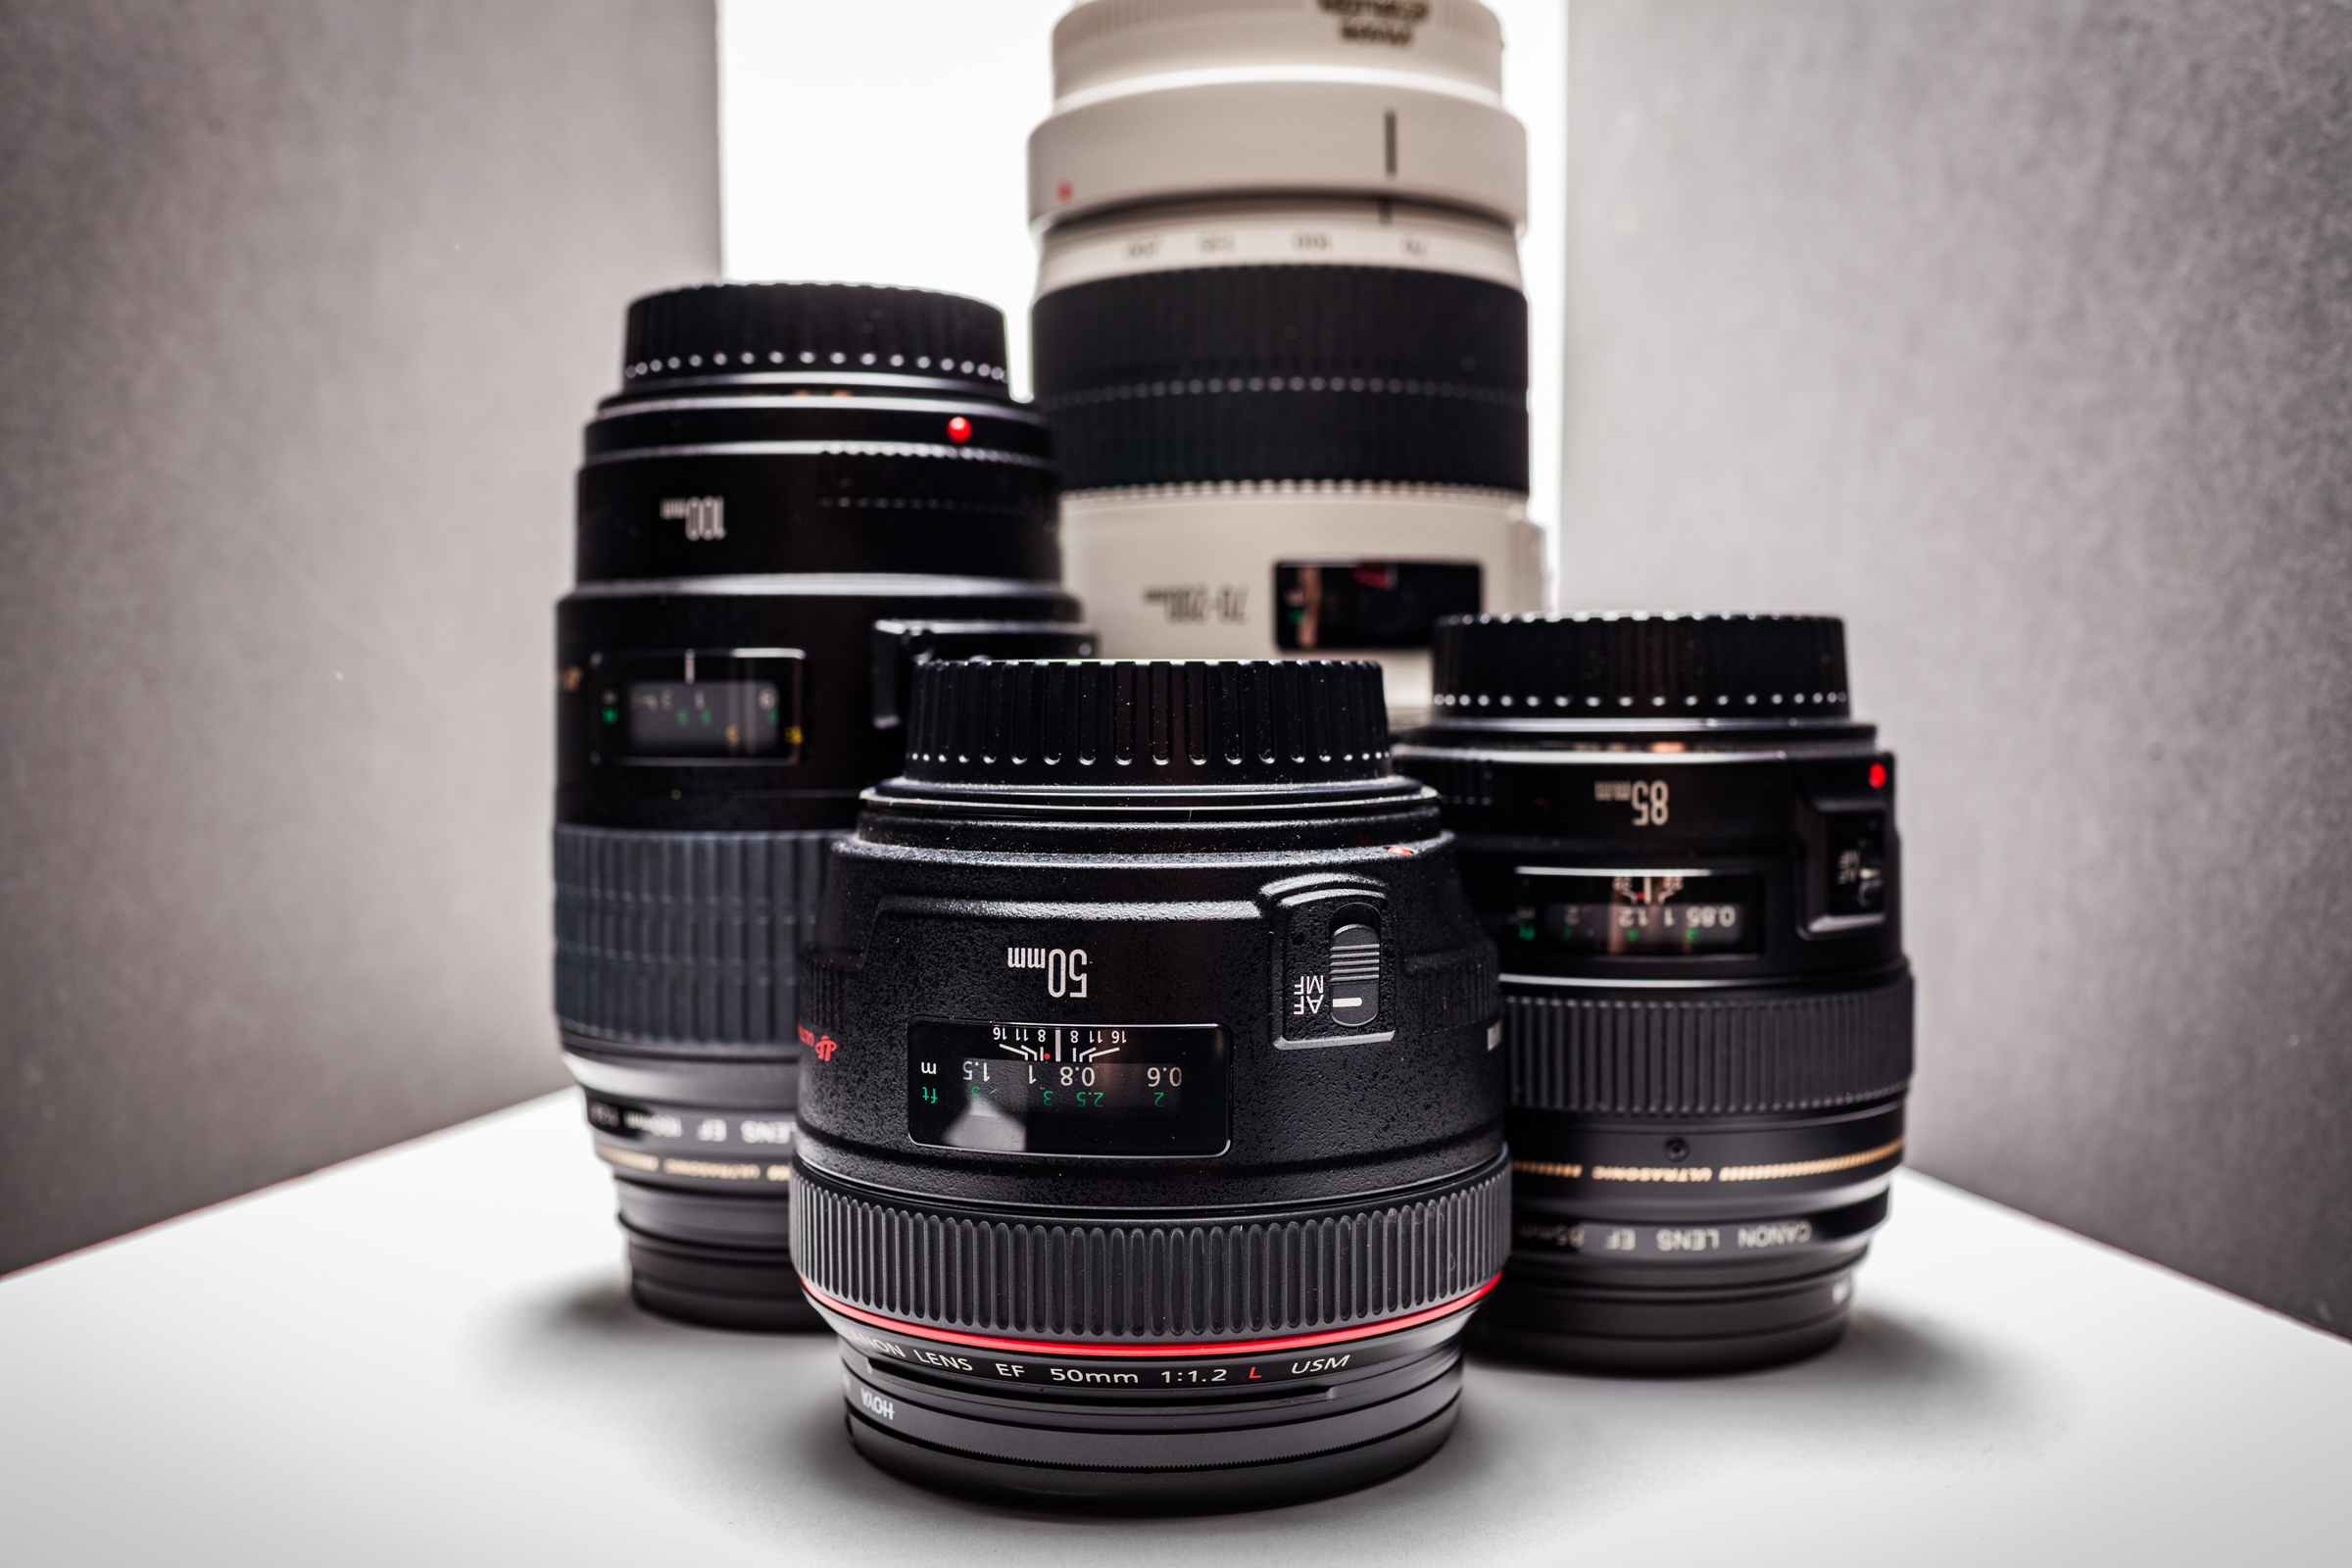 Investing in lenses should be a no brainer